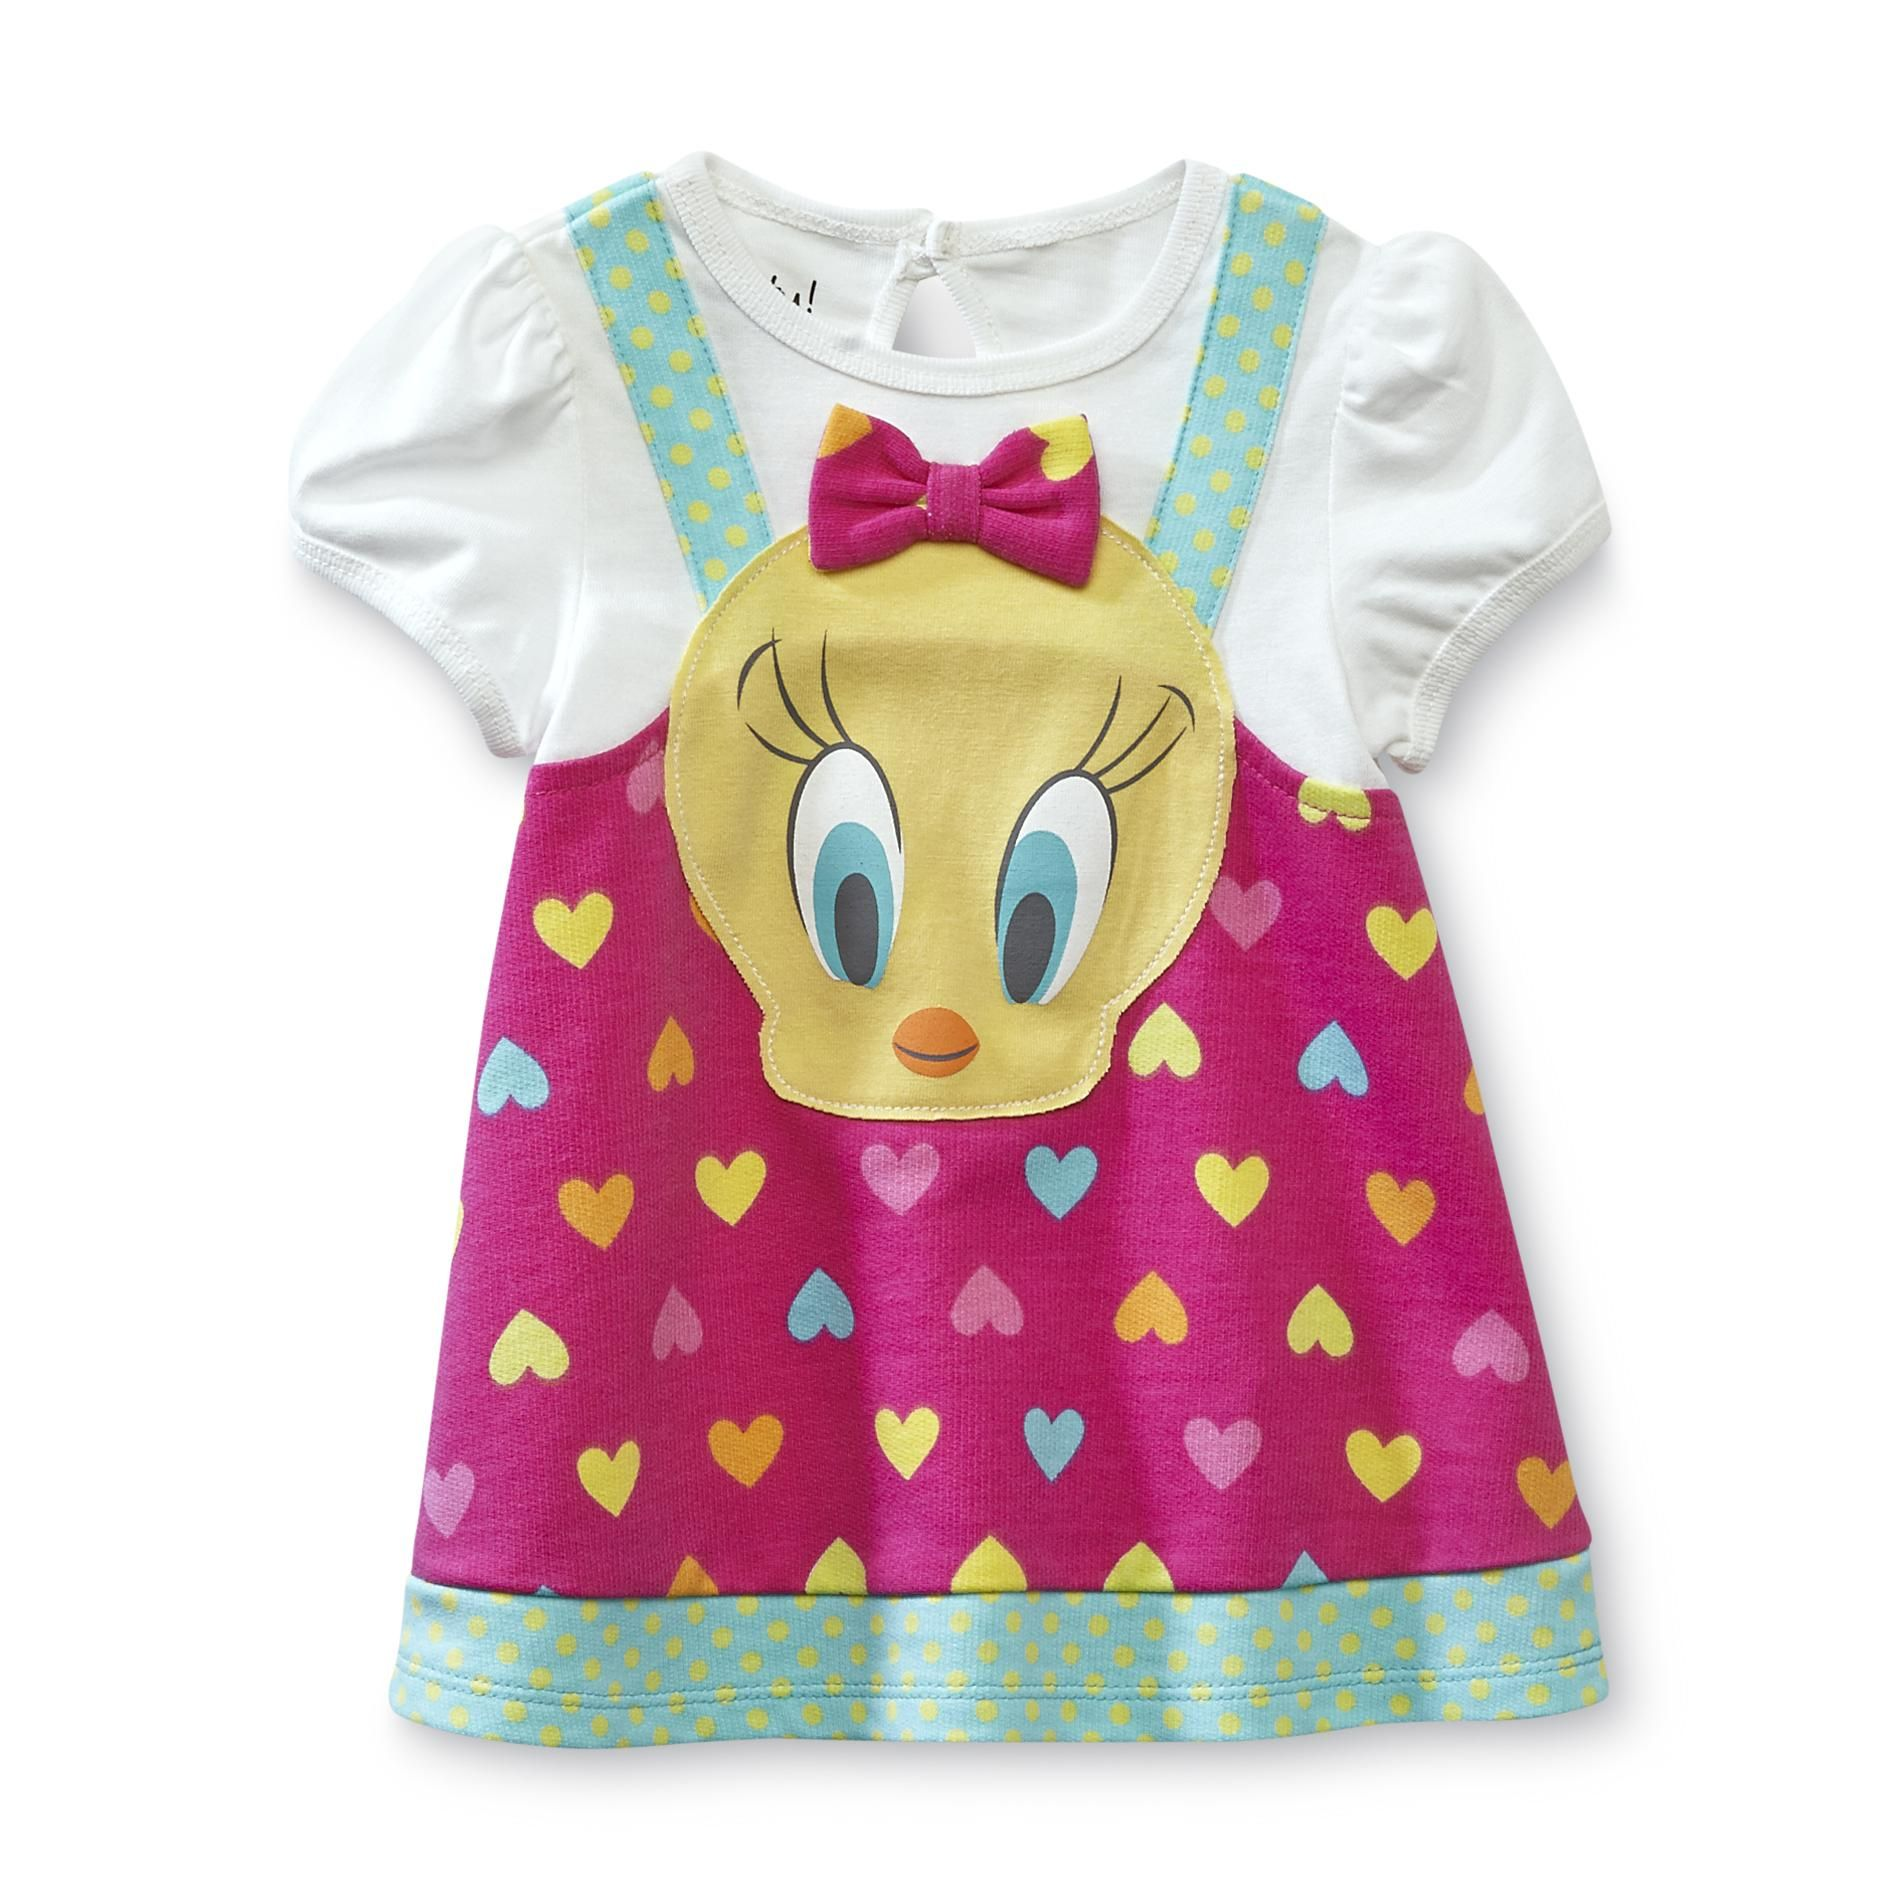 91447402f tweety bird baby stuff - Google Search | baby stuffs | Infant ...